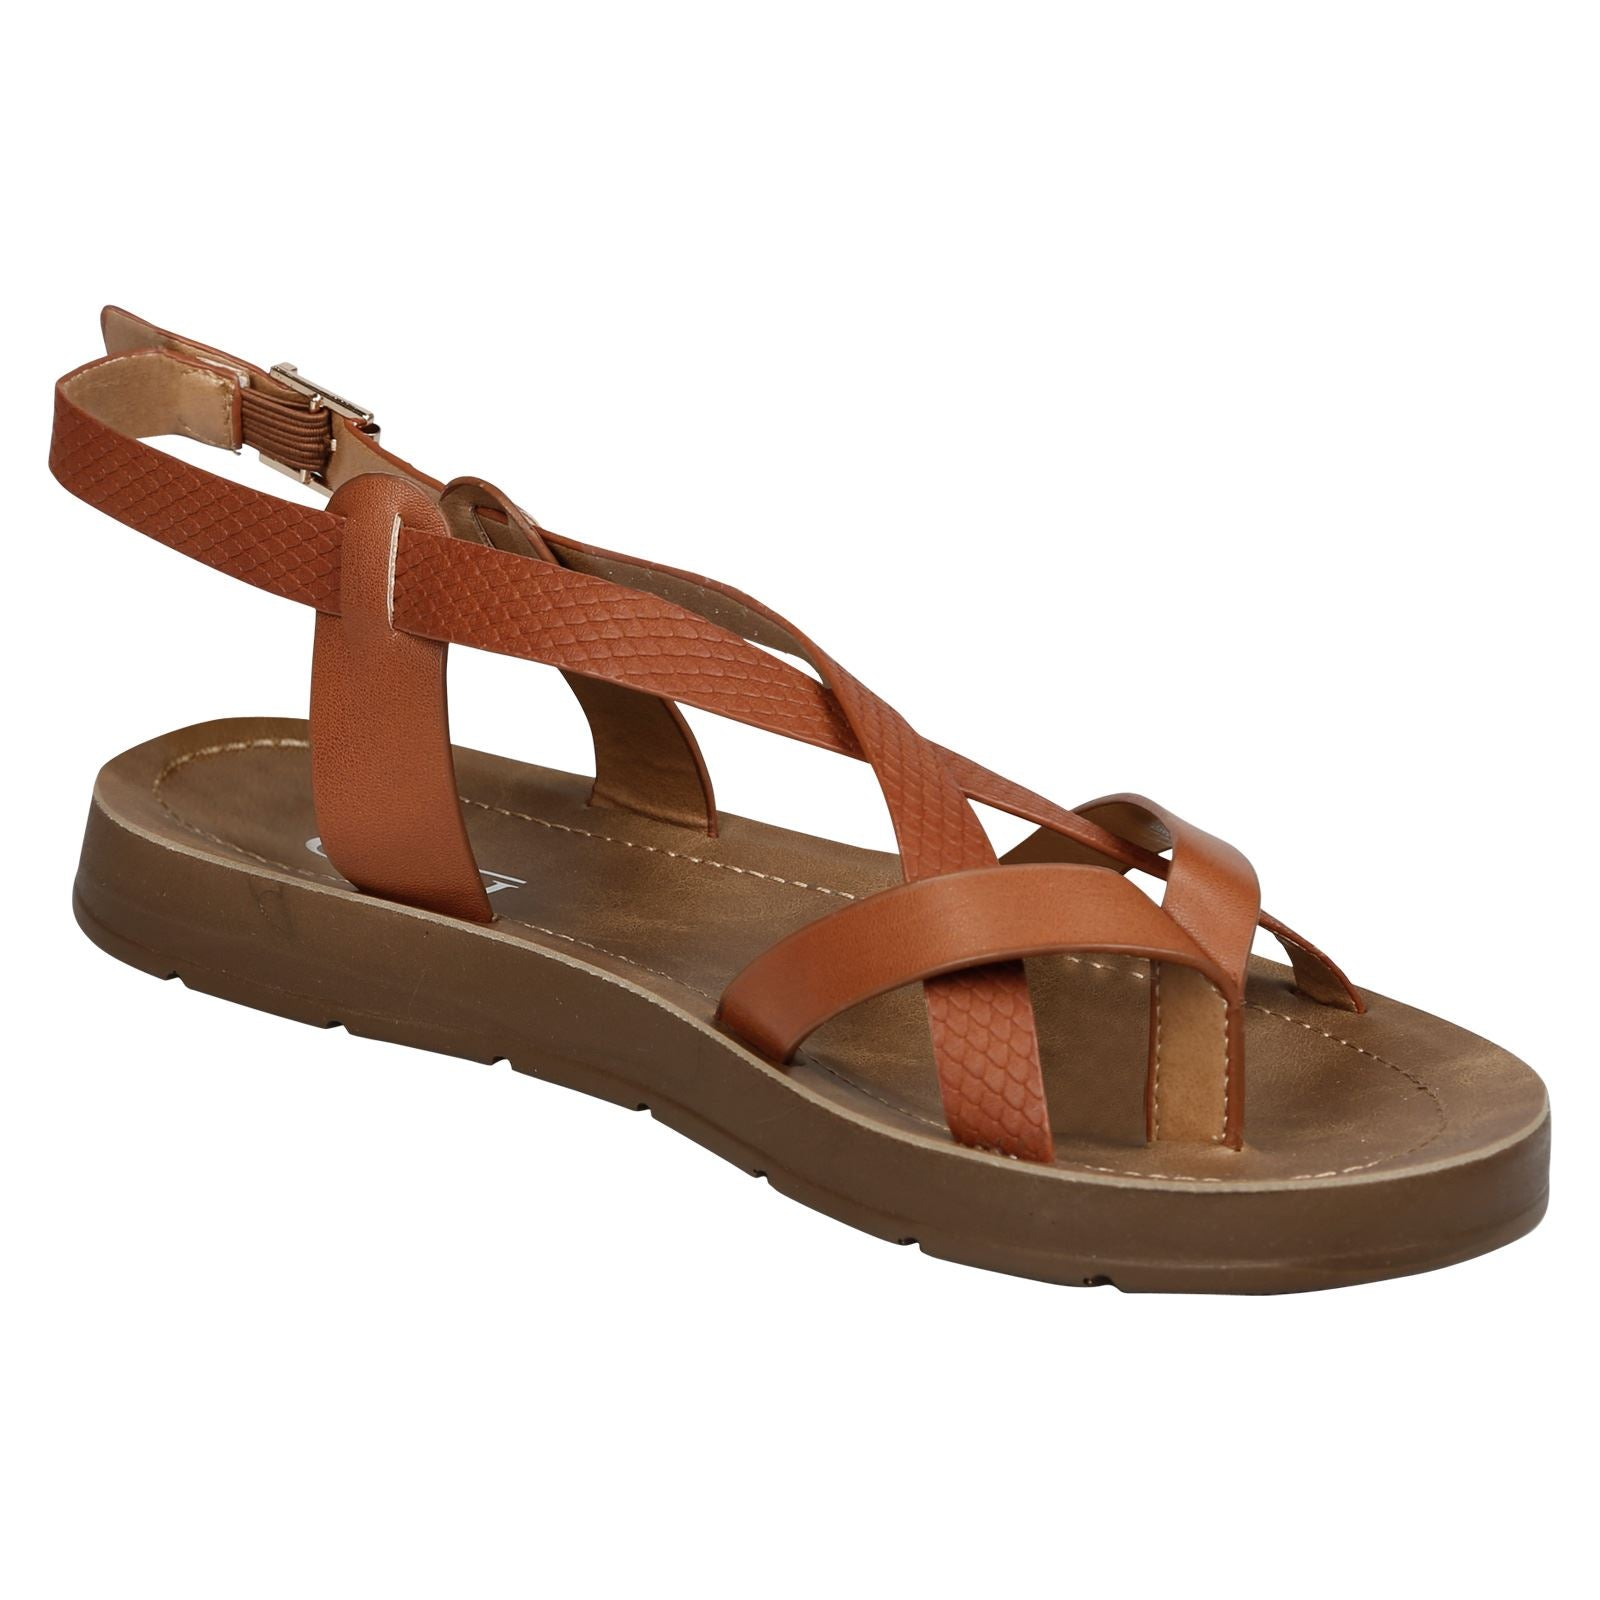 Zelda Strappy Footbed Sandals in Camel Faux Leather